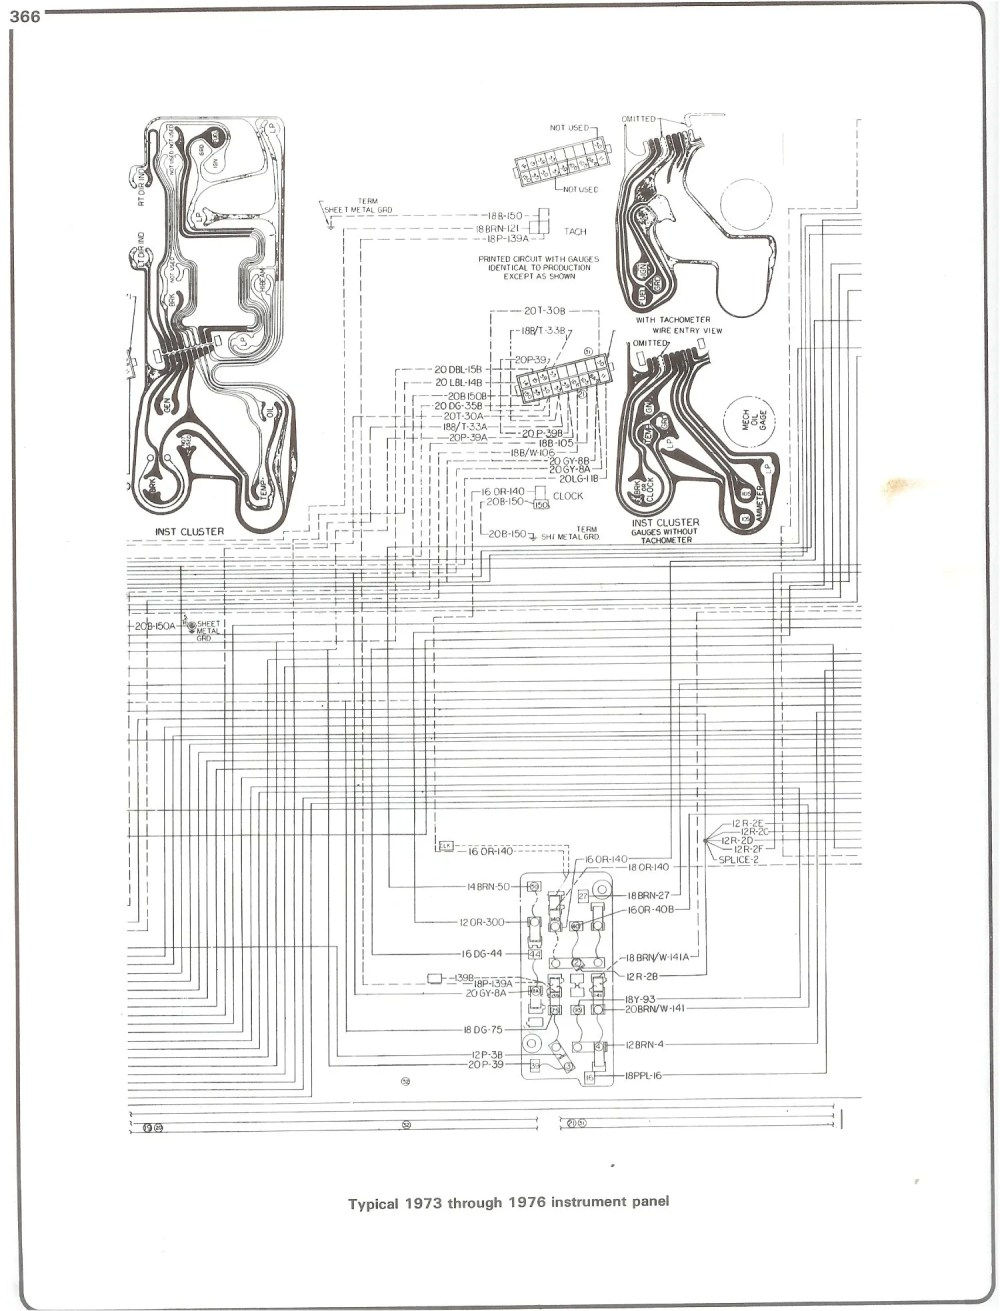 medium resolution of complete 73 87 wiring diagrams rh forum 73 87chevytrucks com 1985 gmc sierra radio wiring diagram 1985 gmc sierra radio wiring diagram